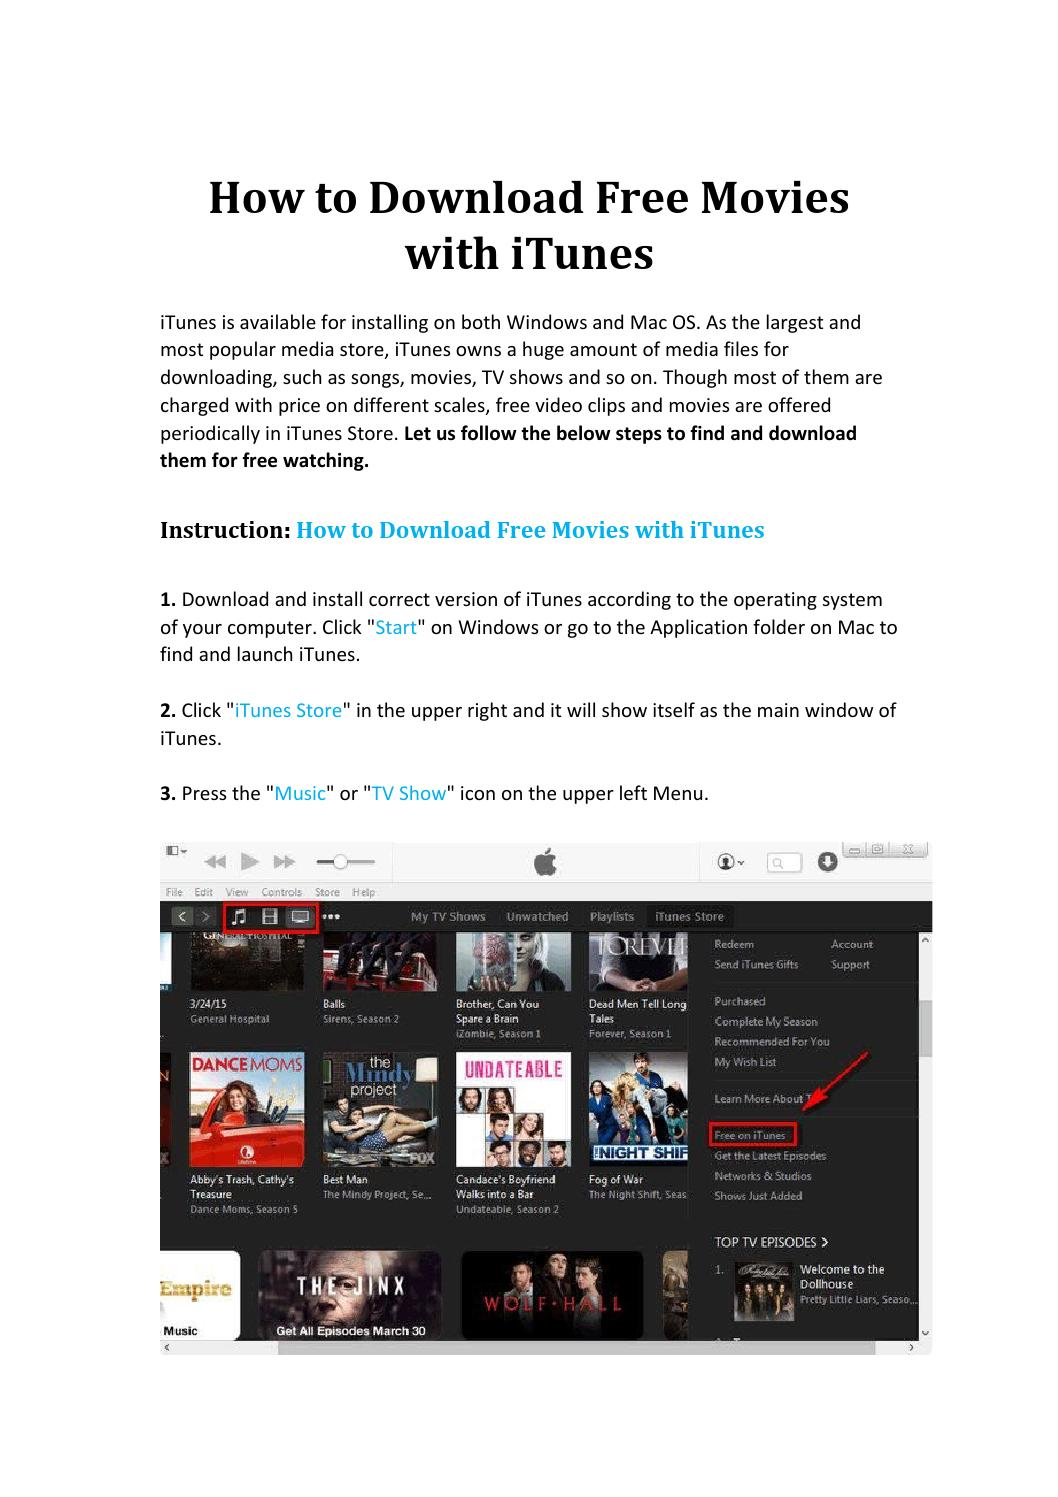 How to download free movies with itunes by Alisa He - issuu